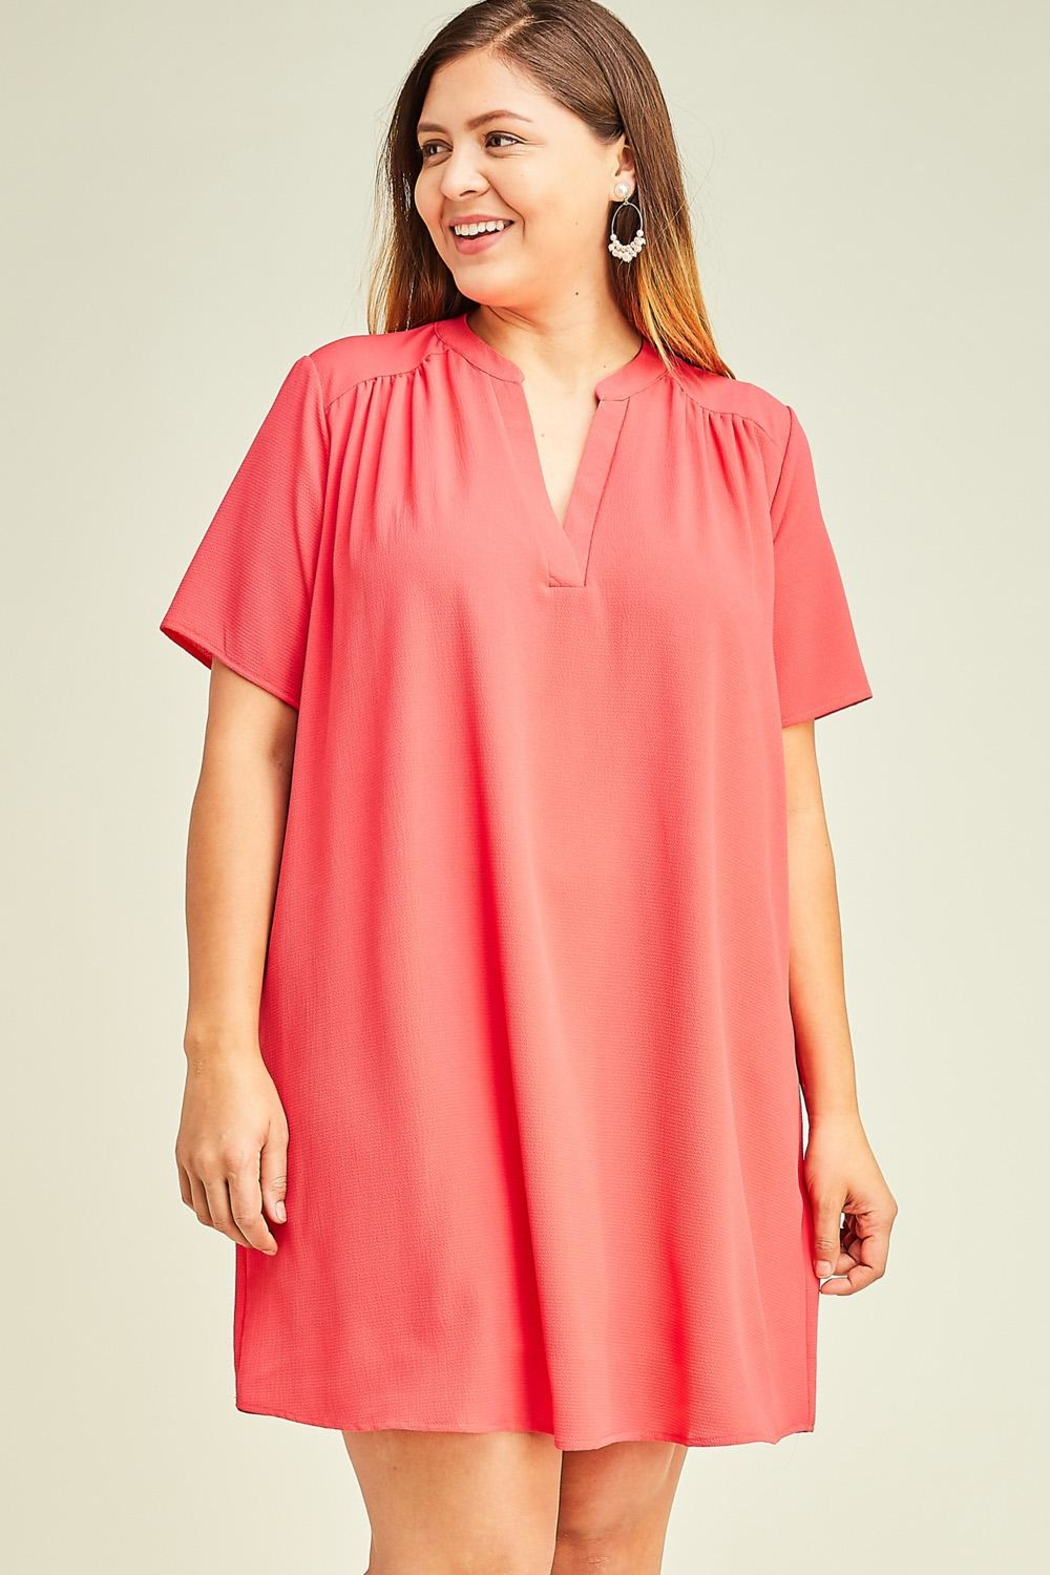 12pm by Mon Ami Hot Coral Dress - Side Cropped Image